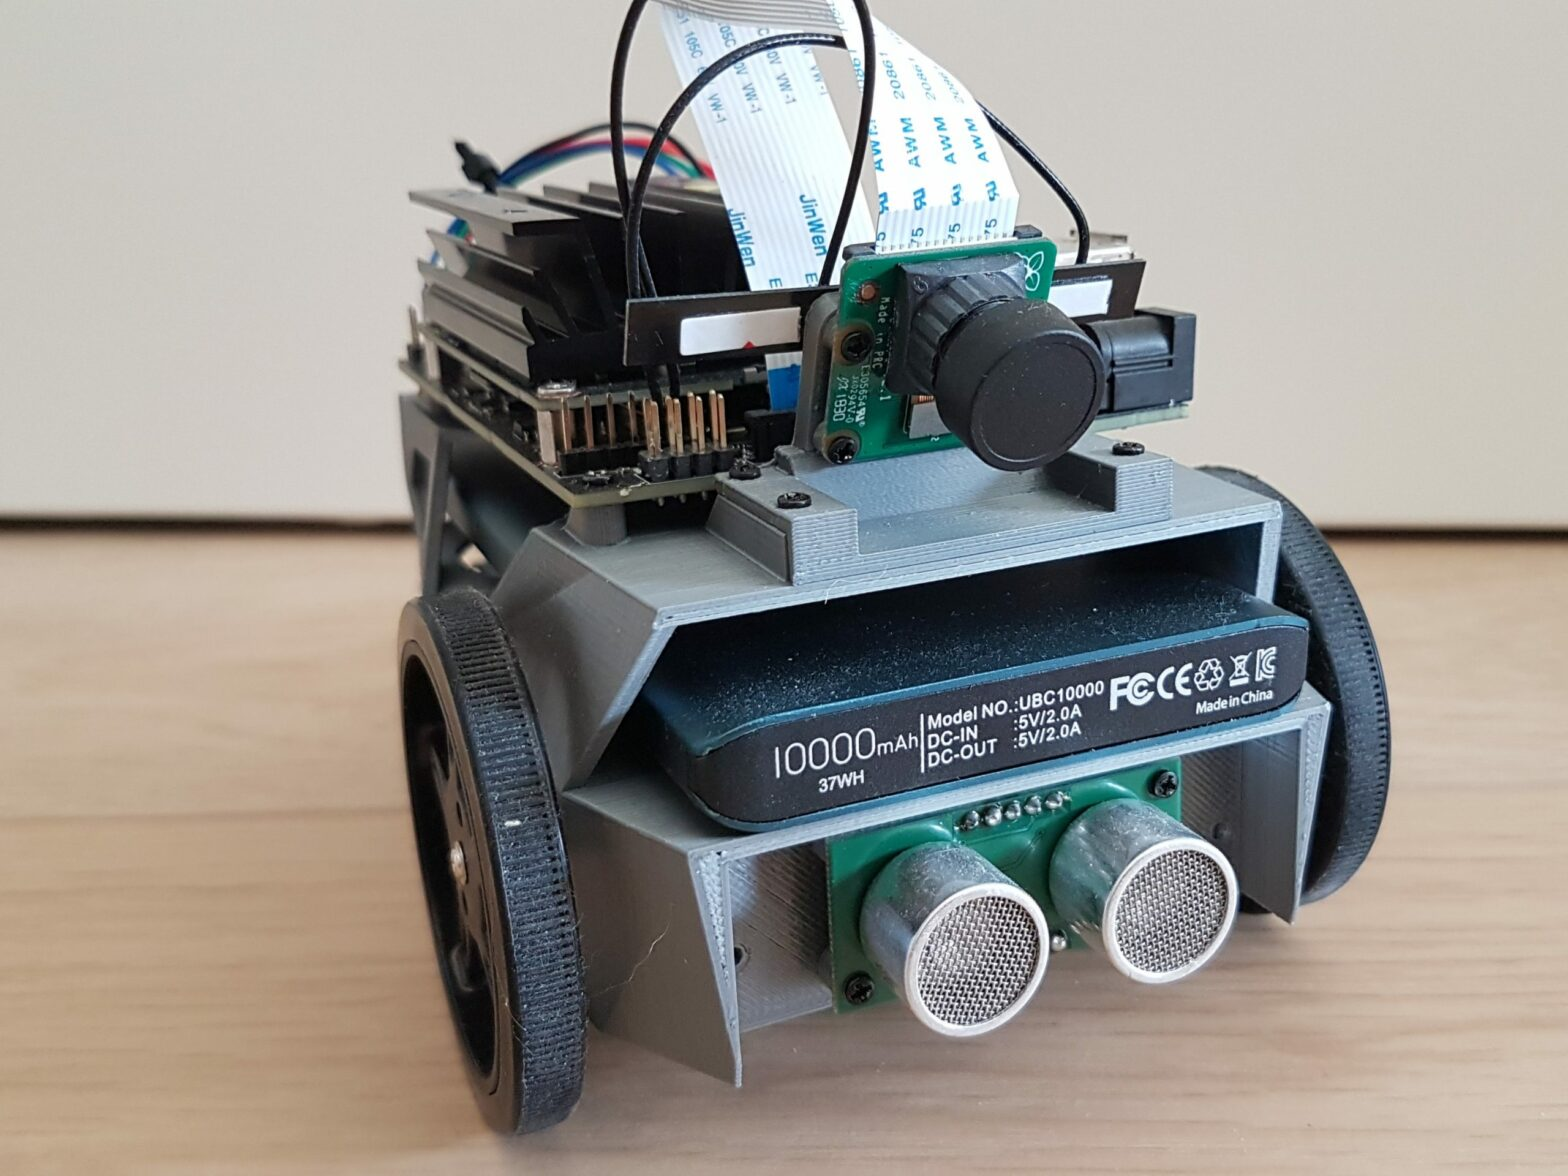 Jetbot with Ultrasonic Sensor